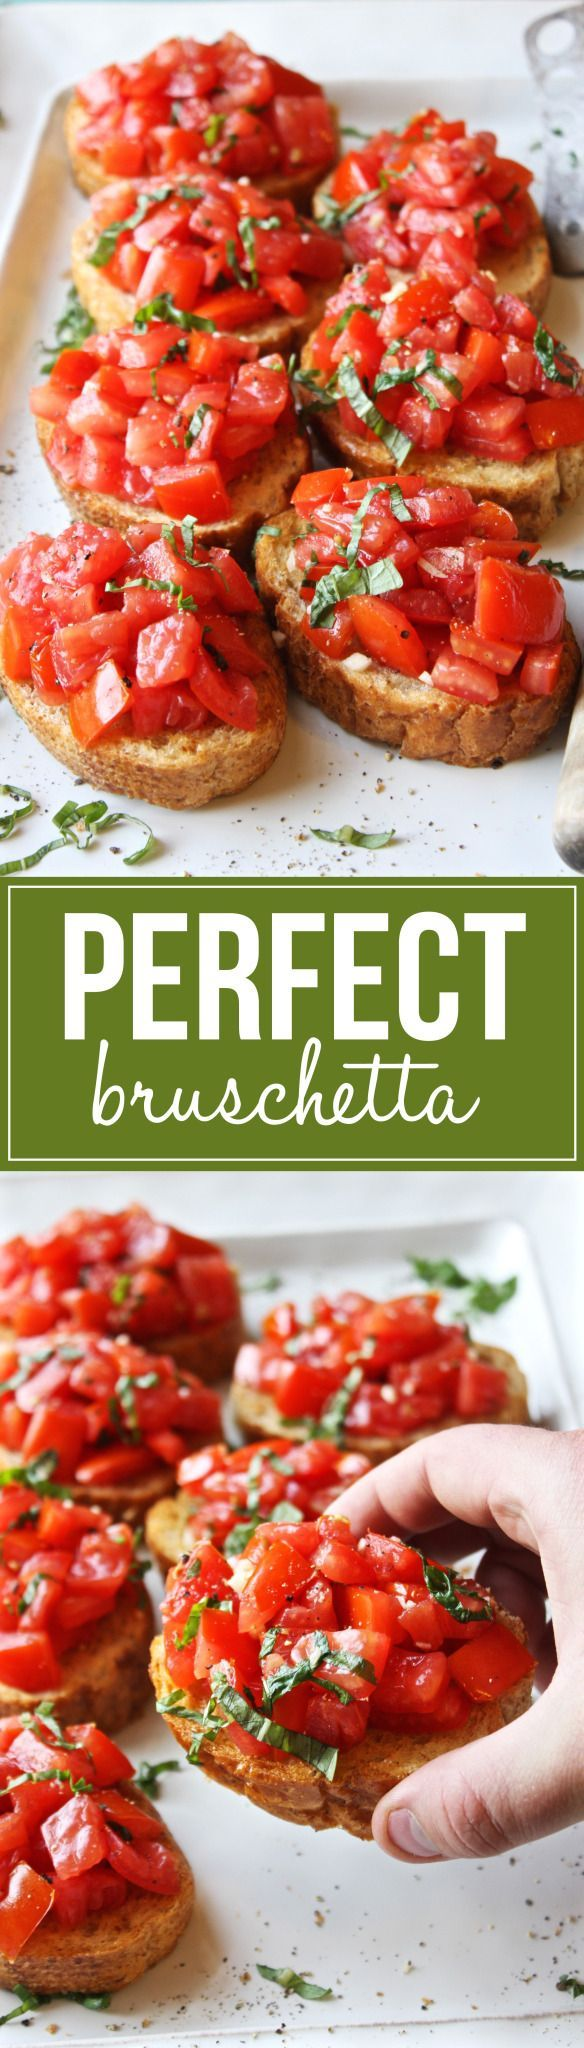 Perfect Bruschetta - Simple, fresh, and seriously amazing. This is the best bruschetta I've ever had!: